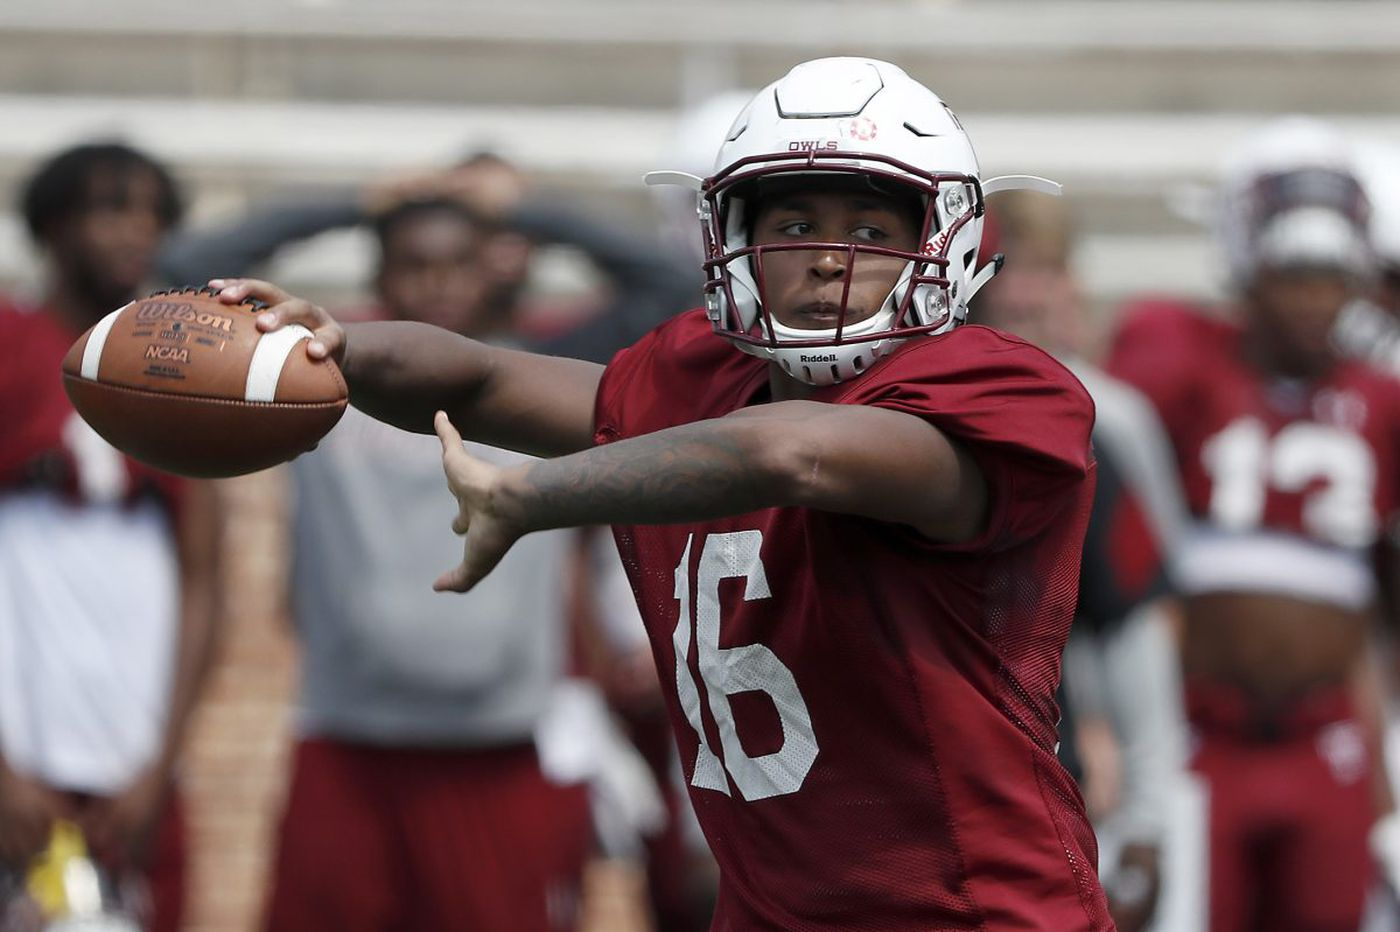 Temple football notes: Todd Centeio impressing at a few positions